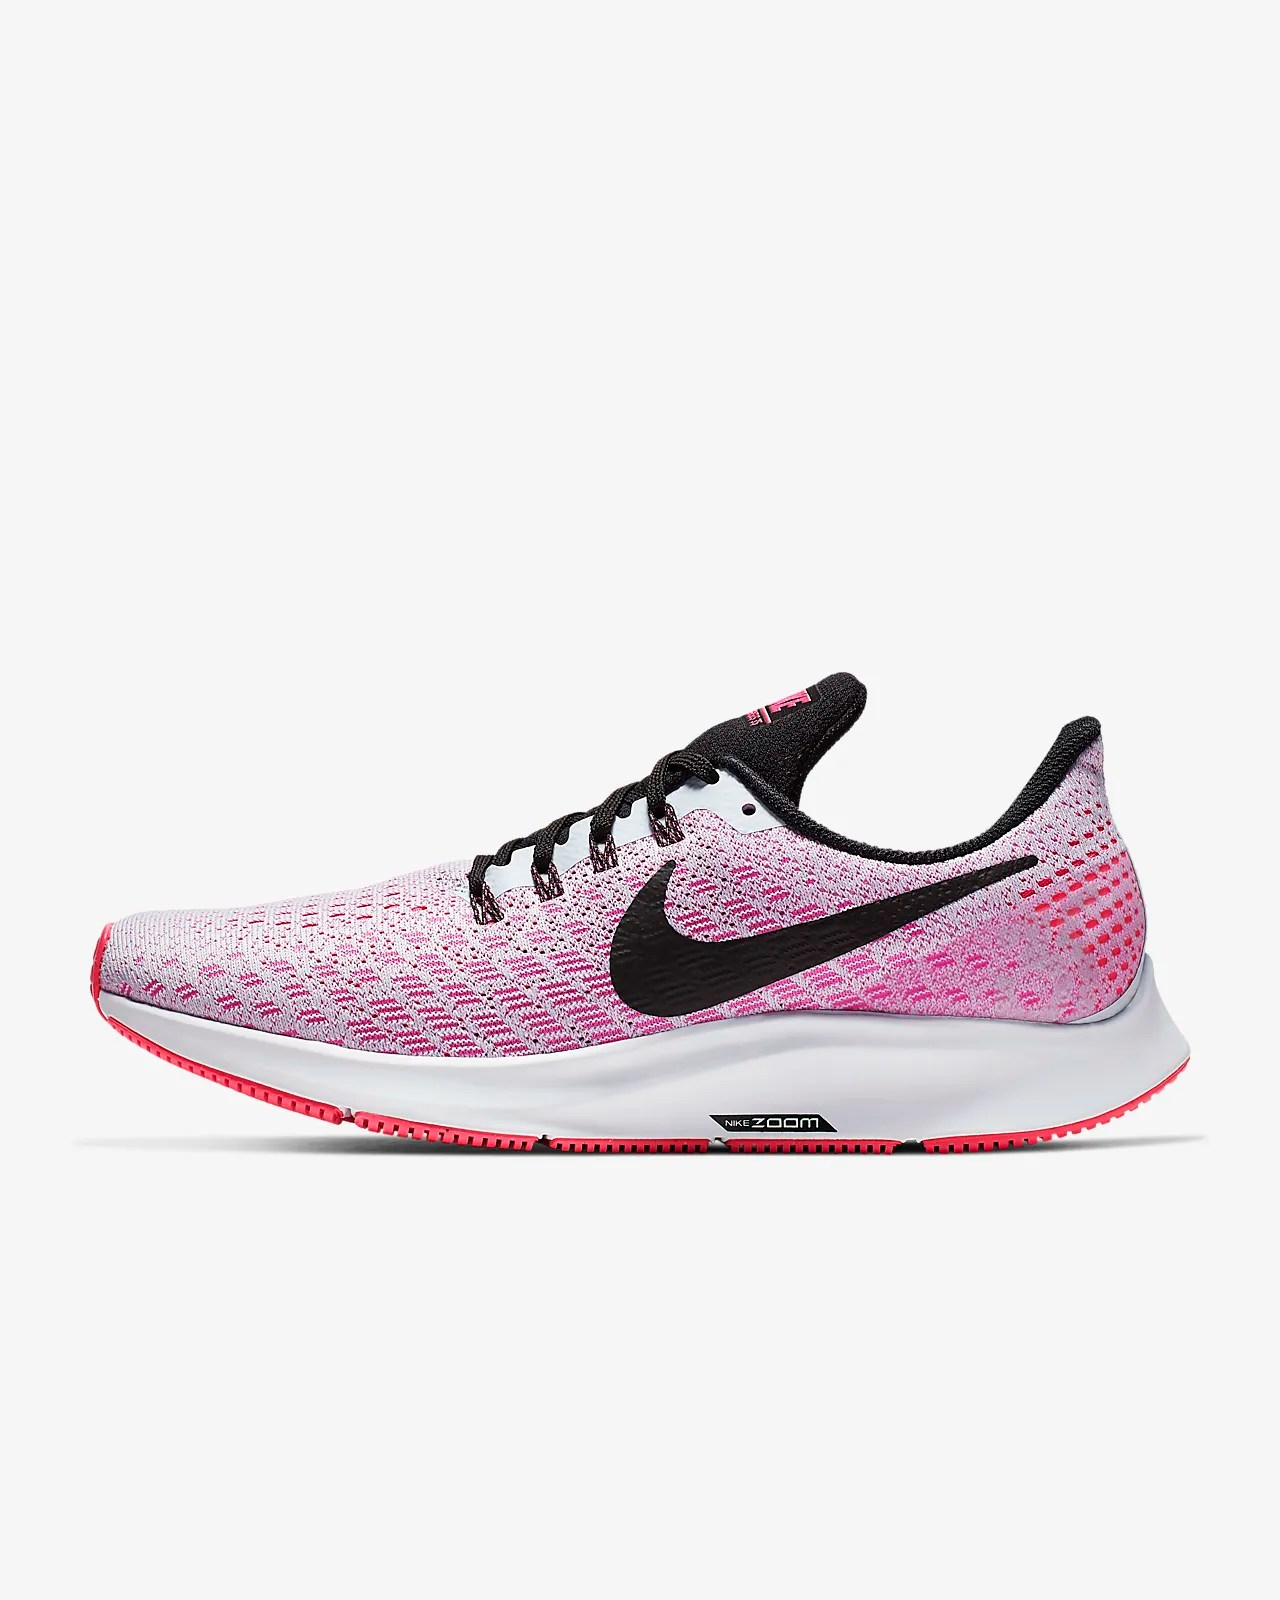 0d7028780d247 Nike Air Zoom Pegasus 35 Women S Running Shoe